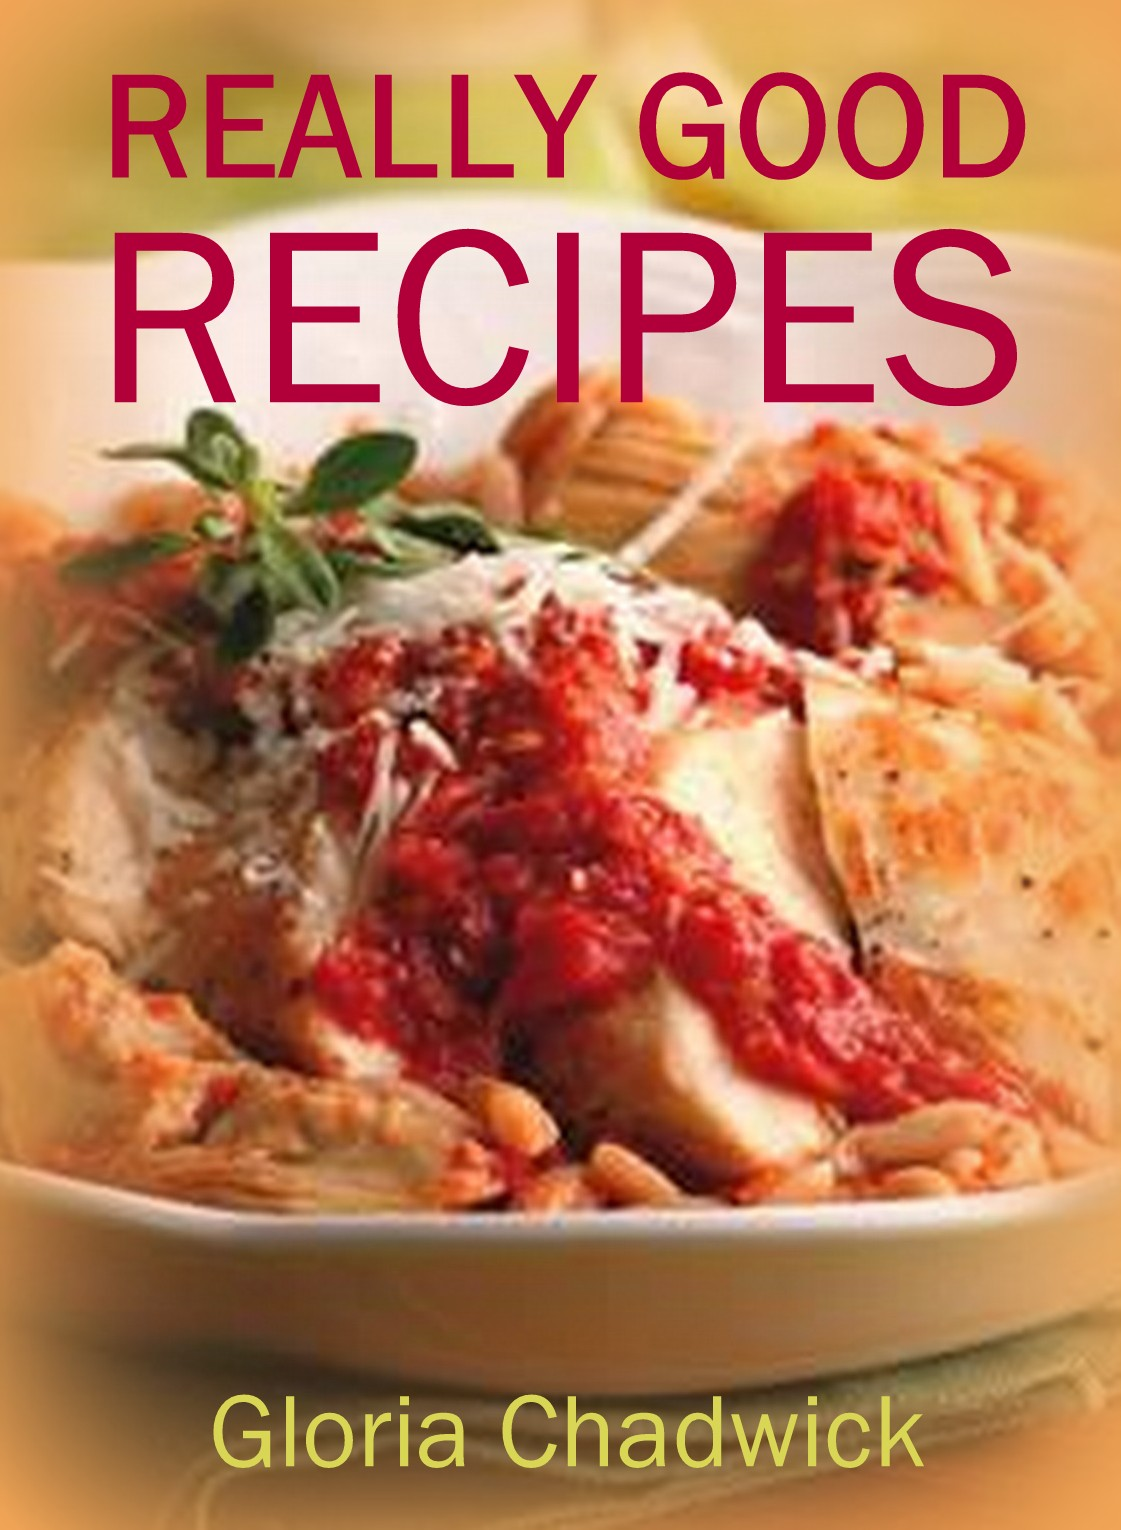 Really Good Recipes